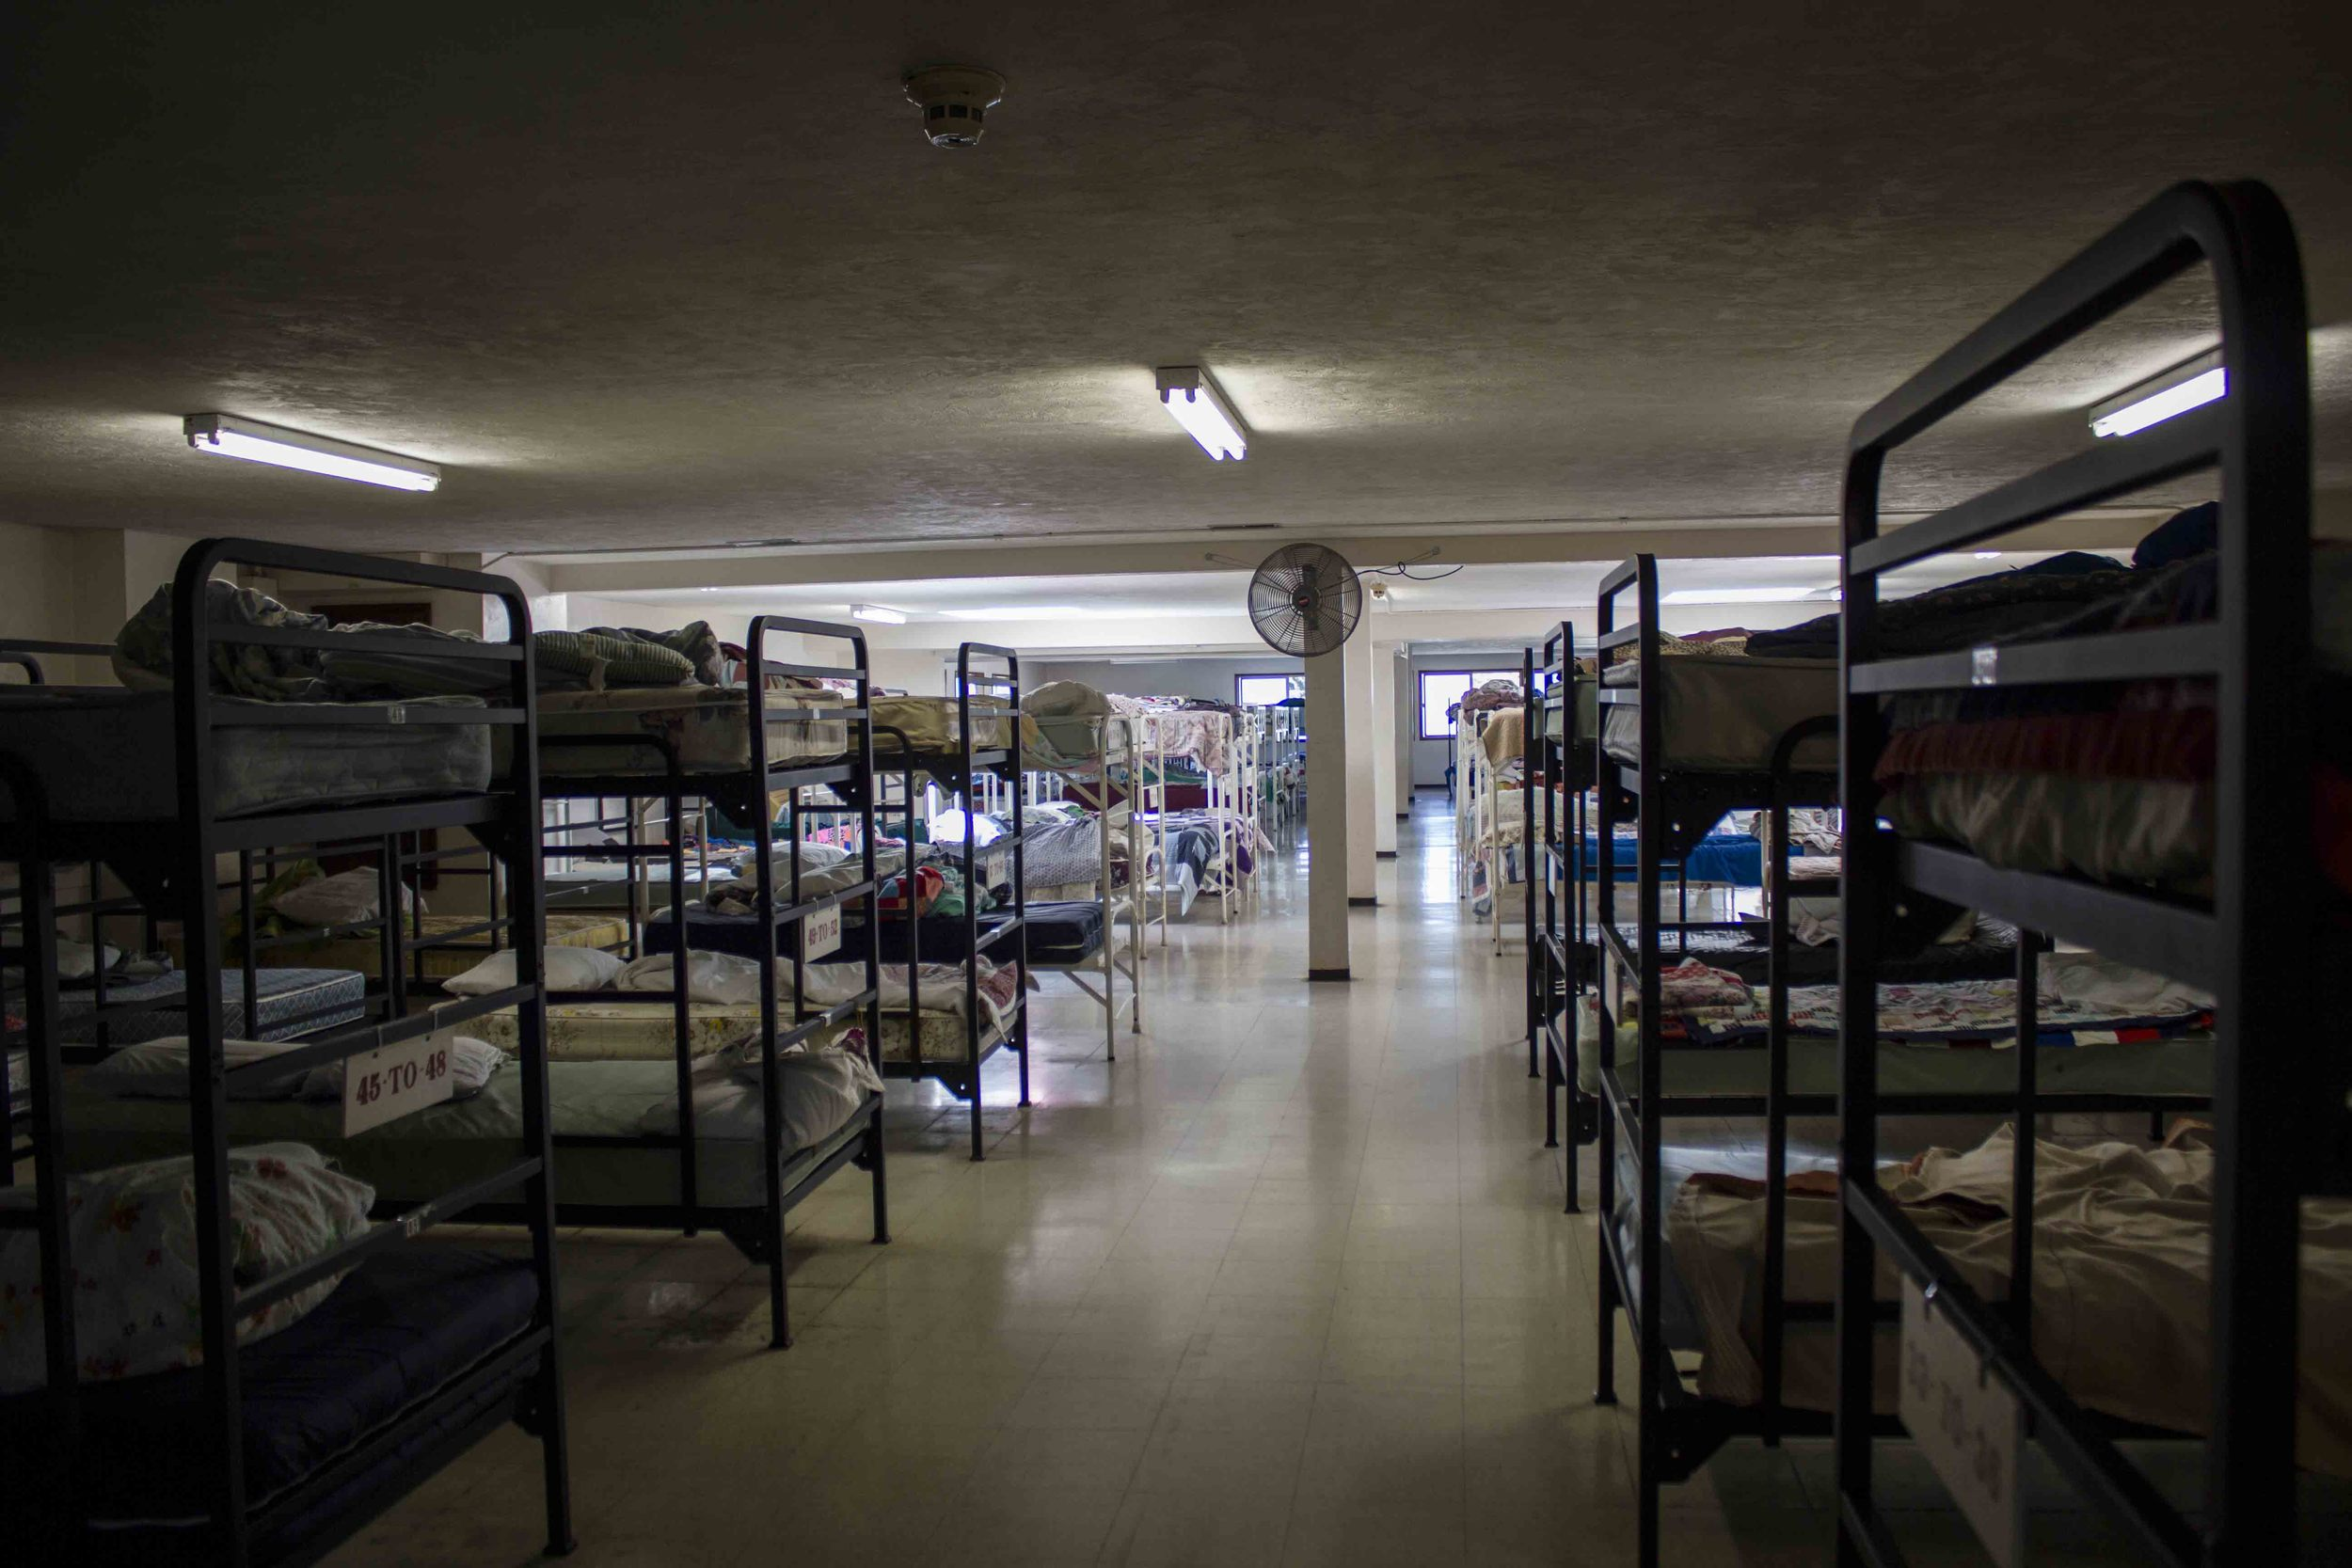 175 beds fit in this room--this is half of the male beds.